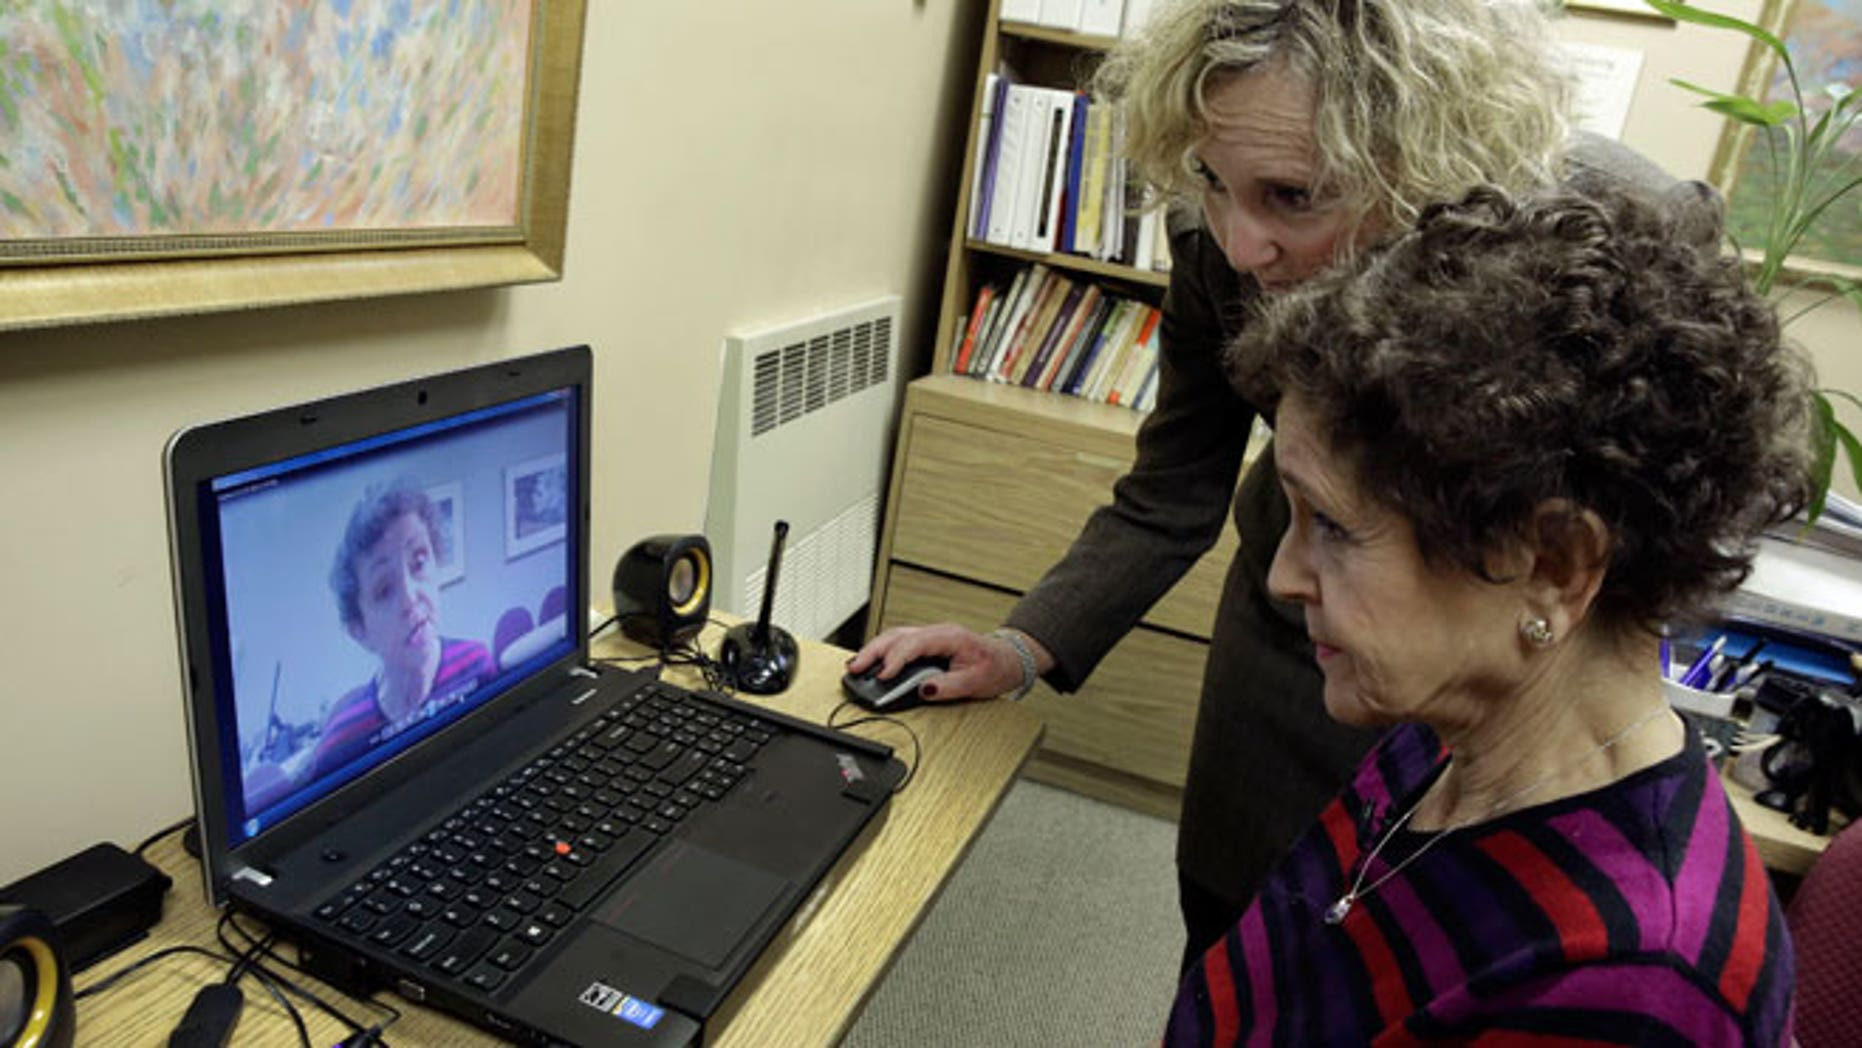 Tamara Rusoff-Hoen, right, watches a video she recorded for her mother, Louise Irving, with Charlotte Dell, Director of Social Services at The Hebrew Home of Riverdale, in New York, Wednesday, March 25, 2015. The nursing home in the Bronx has started a pilot program in which relatives record video messages for patients of Alzheimer's and other forms of dementia. The videos are played for them each morning to calm their agitation and reassure them about their surroundings and their routines.